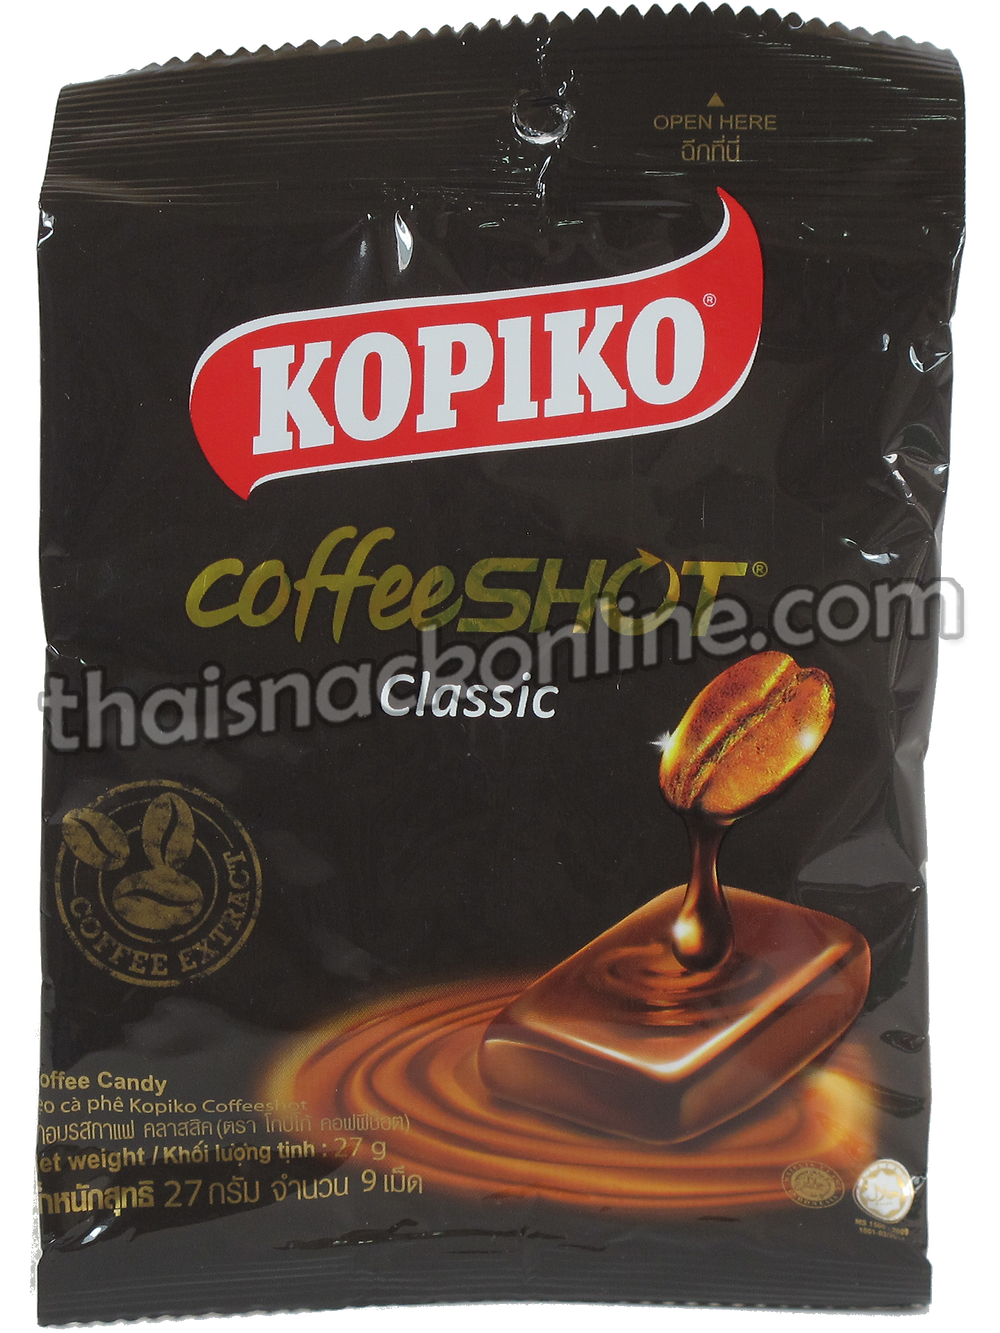 Kopiko - Candy Coffee (27g)